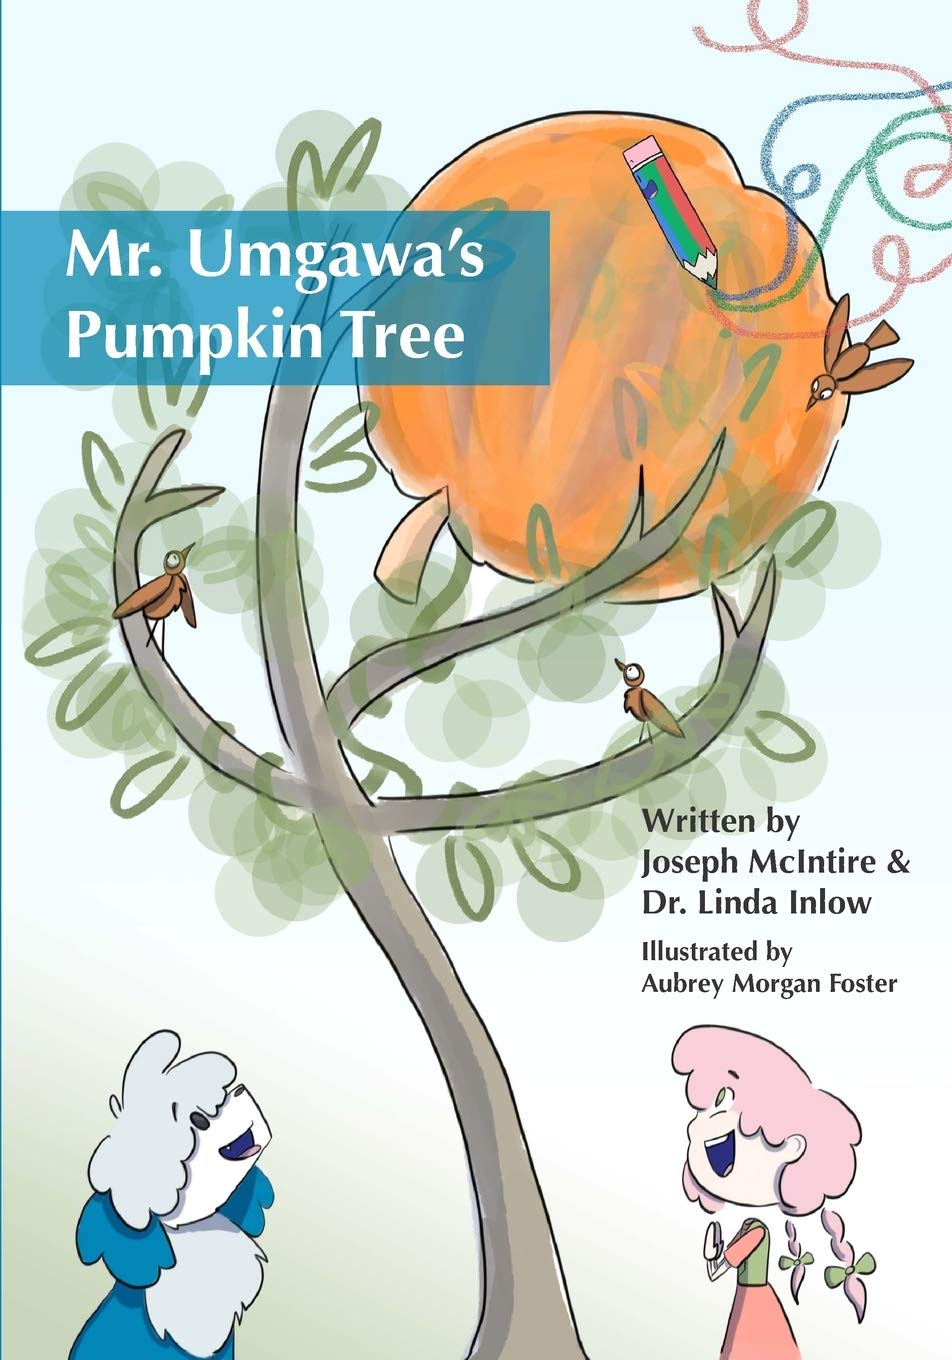 Mr. Umgawa's Pumpkin Tree